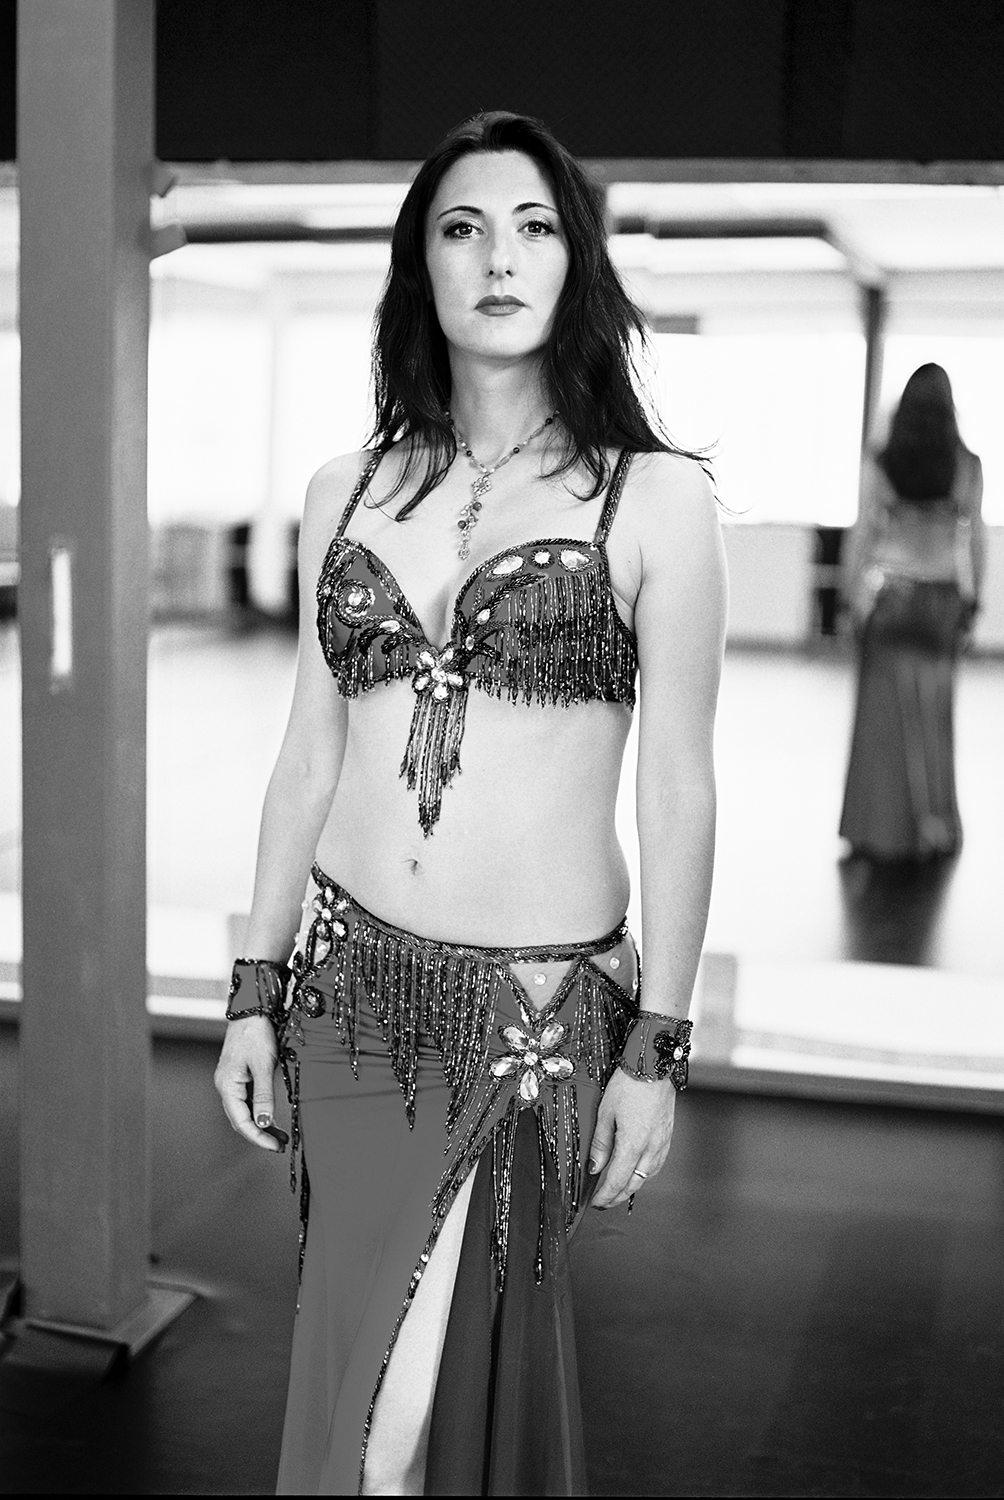 "Ana // Owner belly dance studio Ana Danst ""If you want to learn how to belly dance, you'll be a 'beginner' for the first few years. If you're here for some 'quick tricks', you're at the wrong address"", she said with friendly conviction. She didn't seem too worried about scaring off the new students. It made me smile and it got me curious. 5/10"